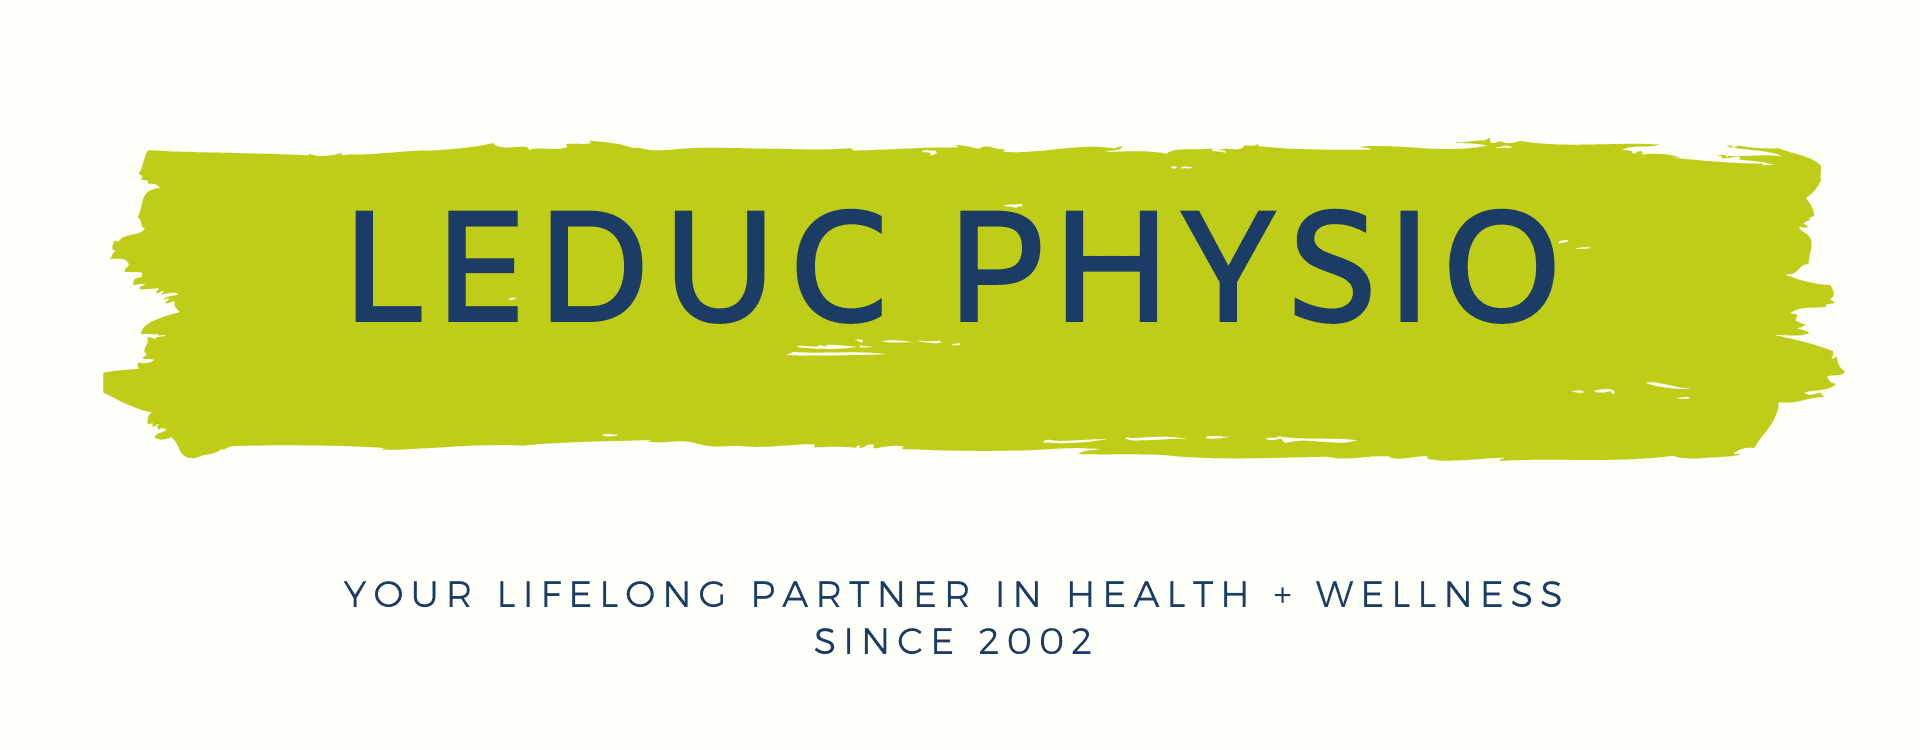 Leduc Physio - Physical Therapy and Massage Therapy Services